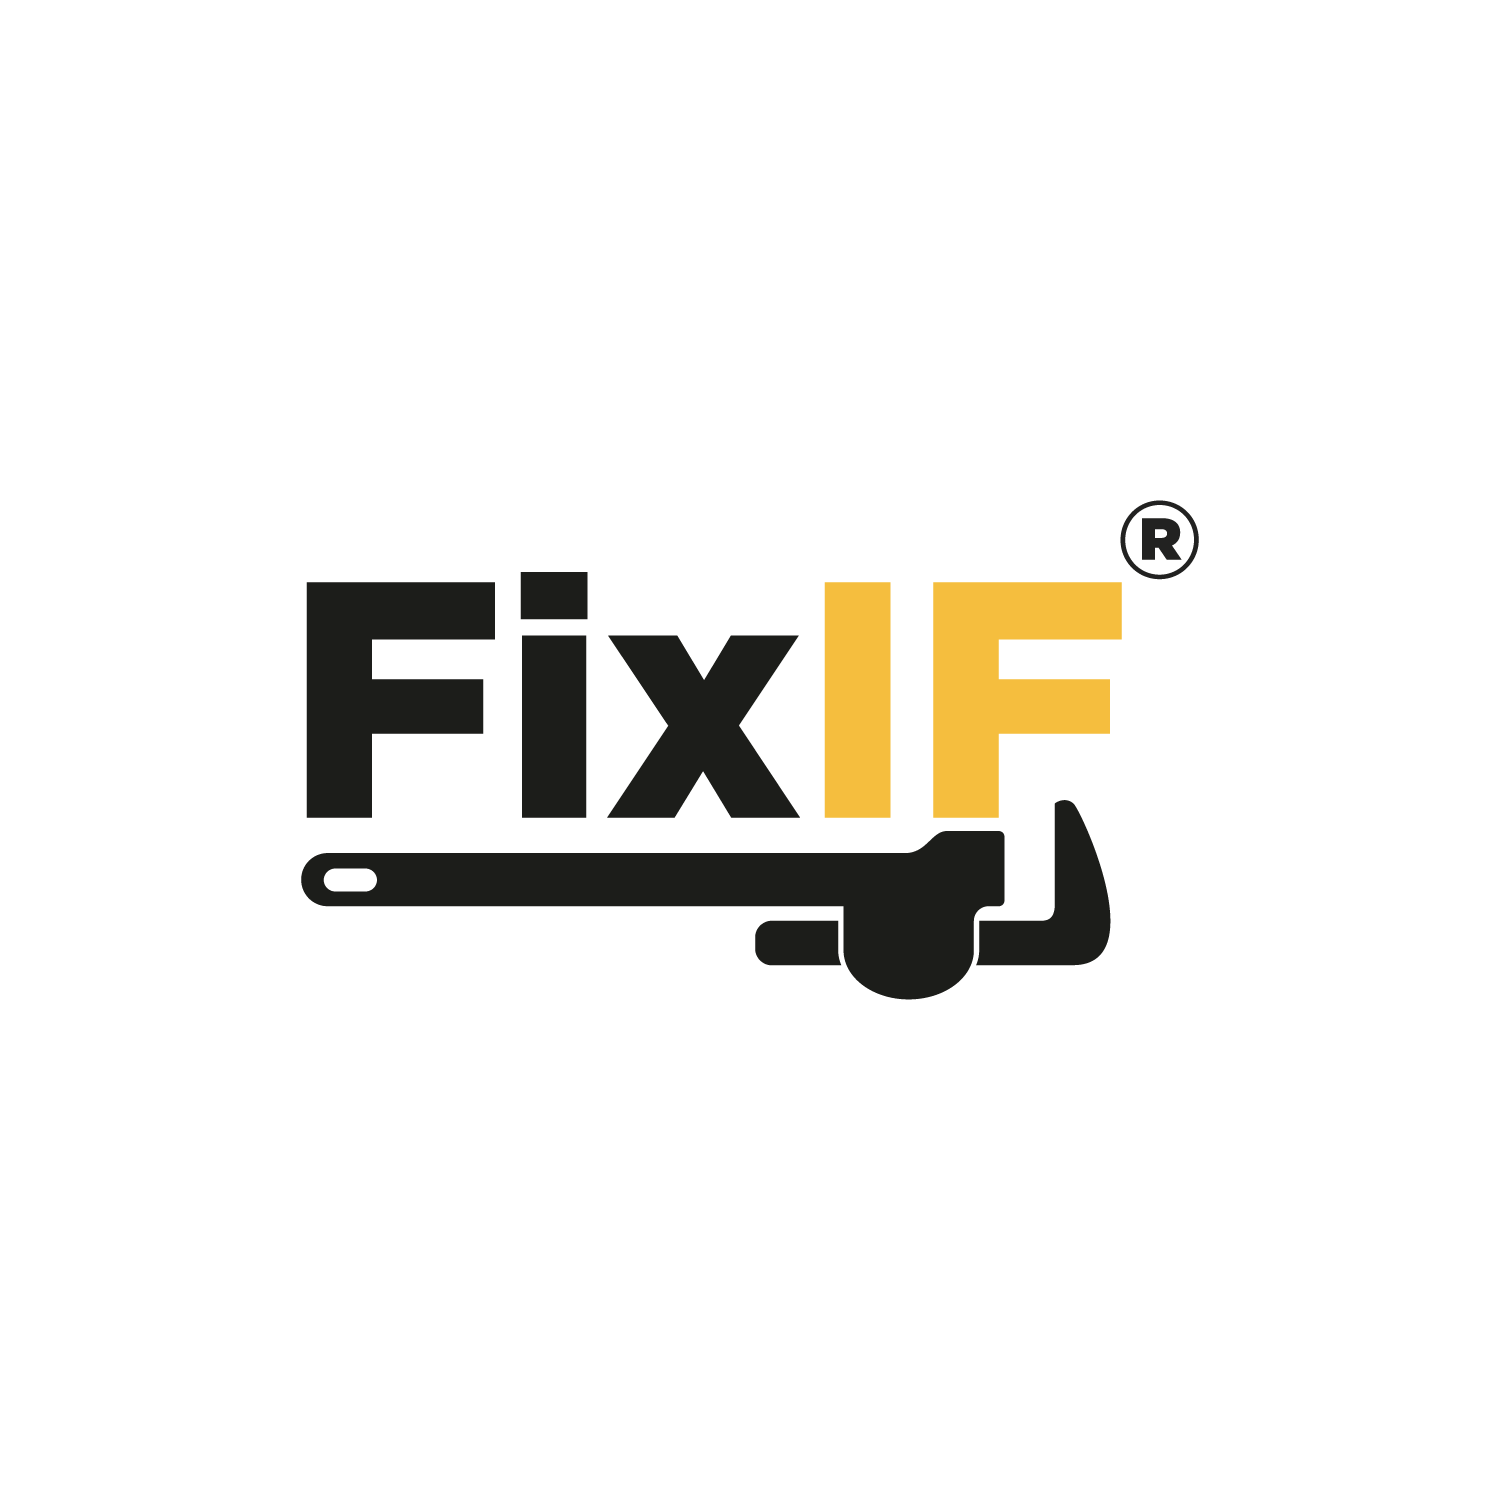 FixIF Emergency Plumber in Clacton-on-Sea